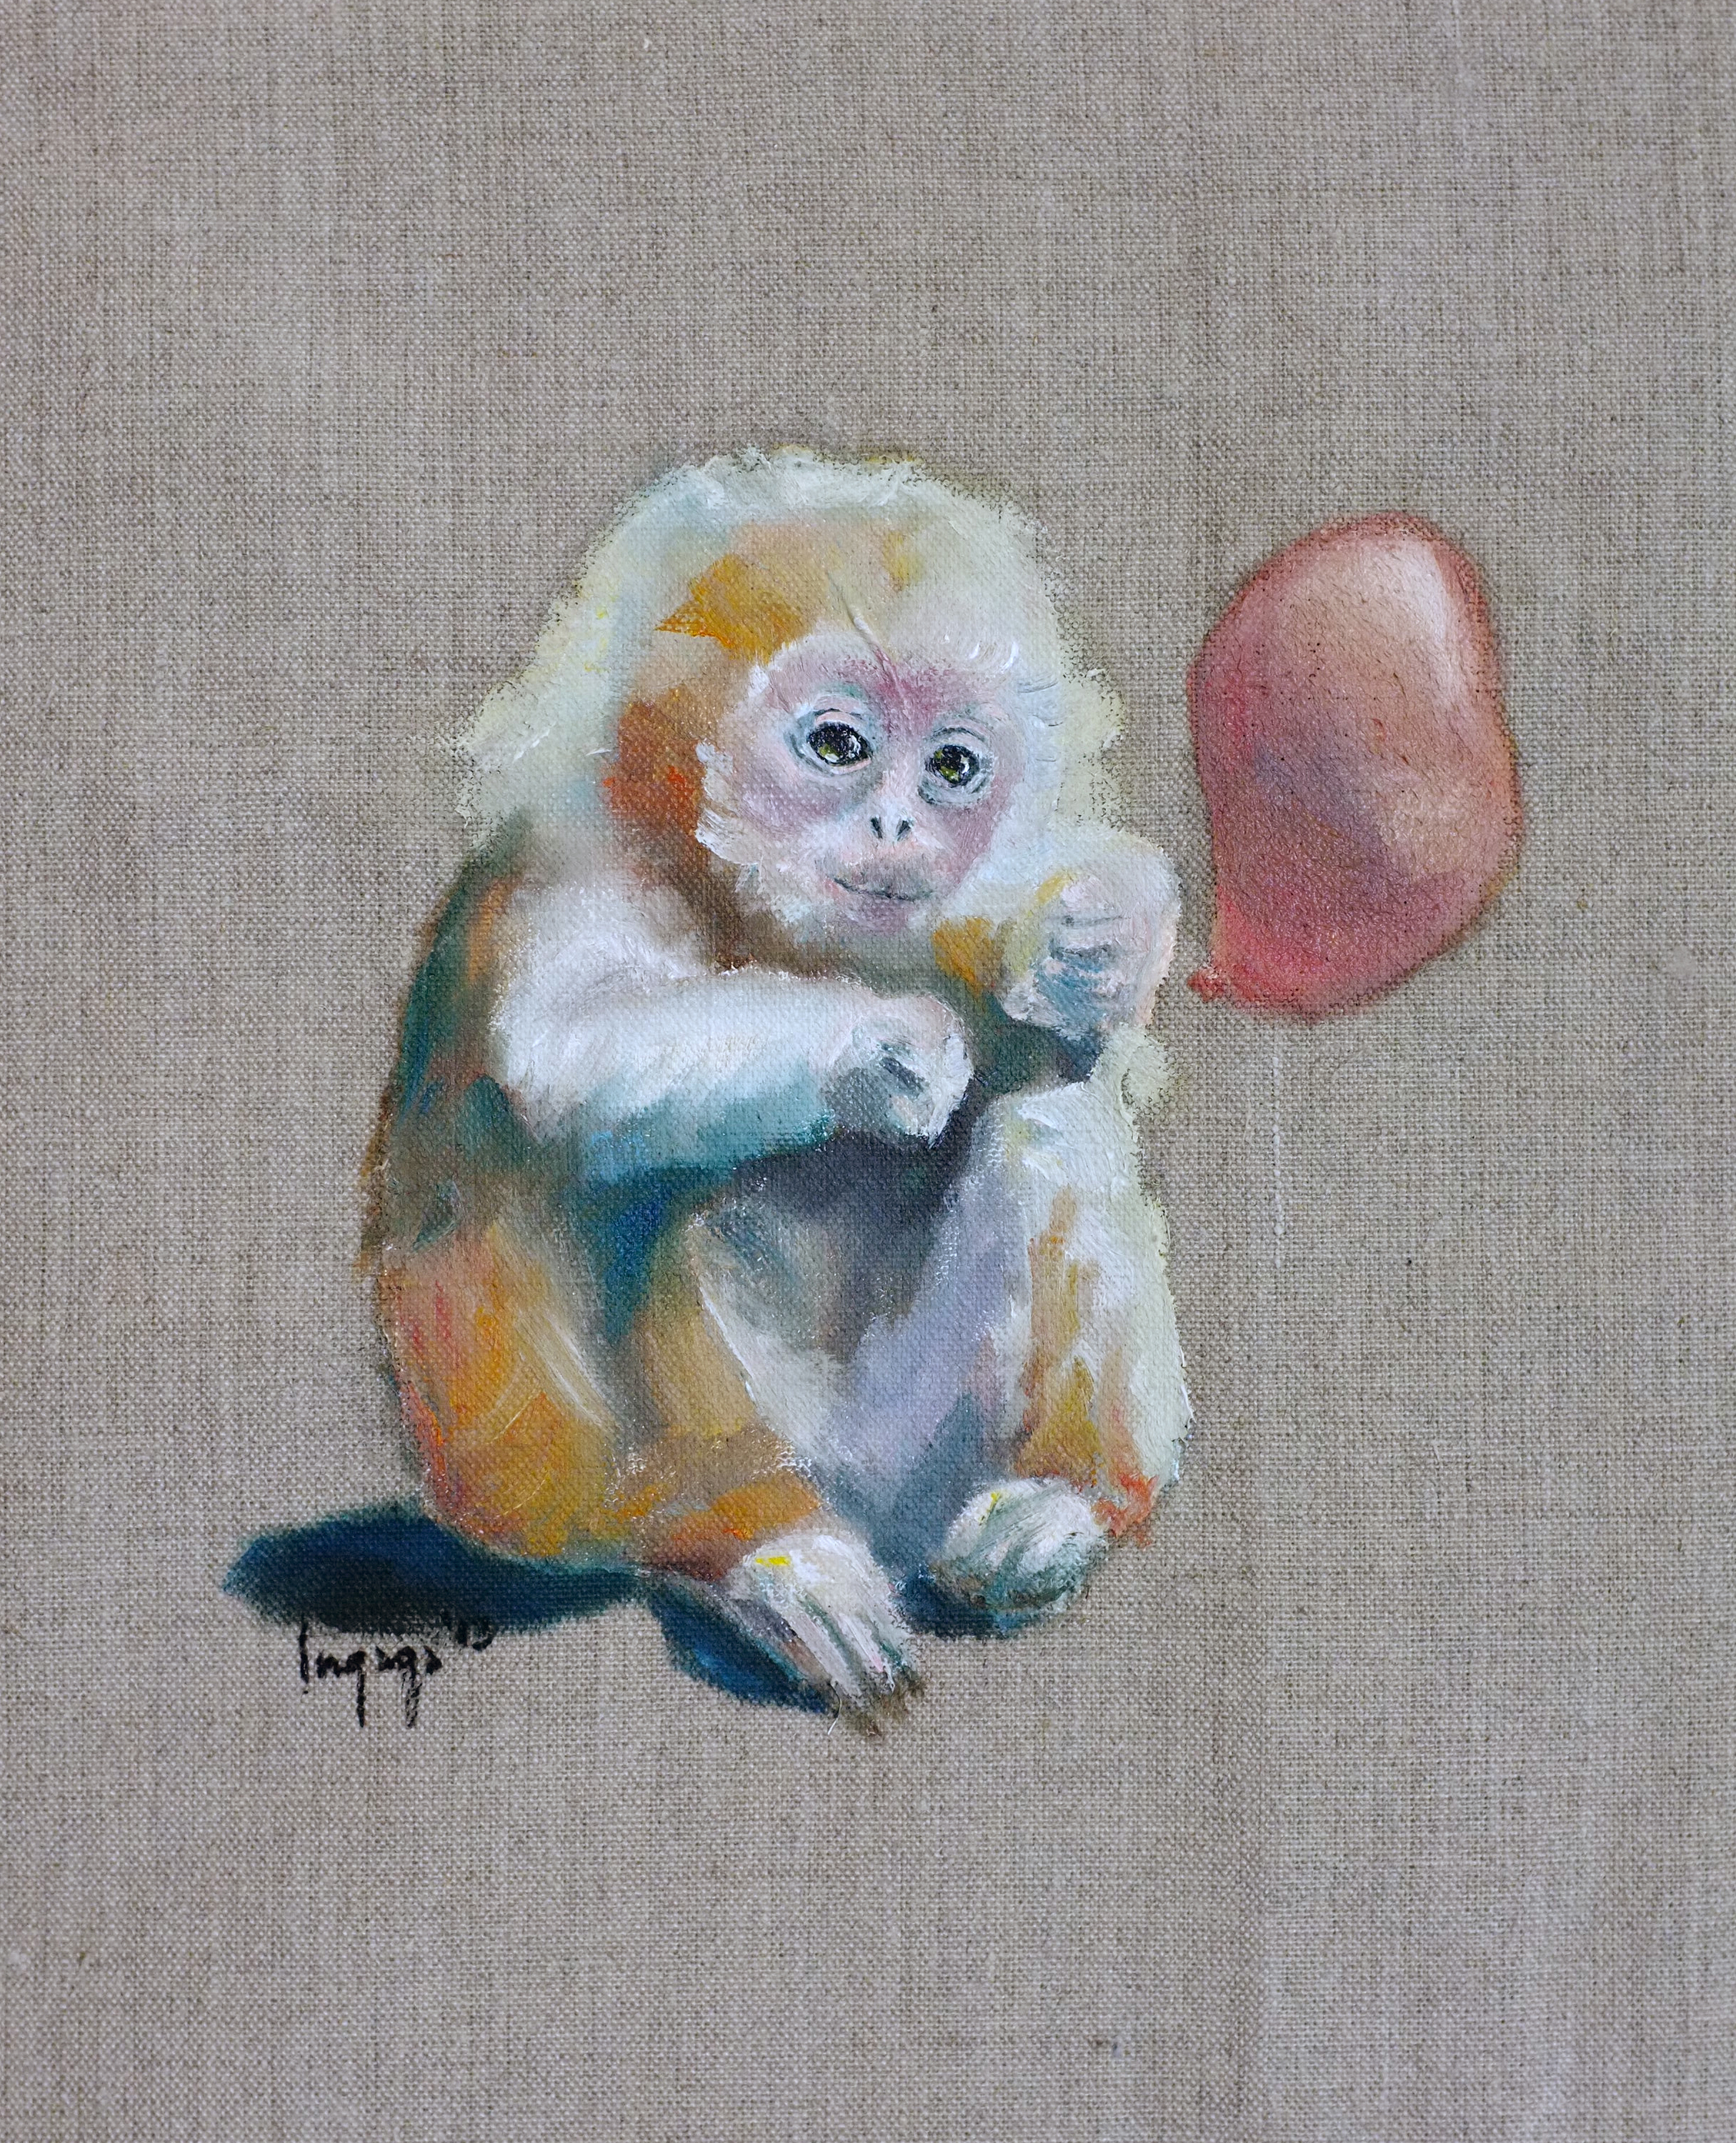 MONKEY AND A BALLOON  20 x 20cm  Oil on linen / 2013